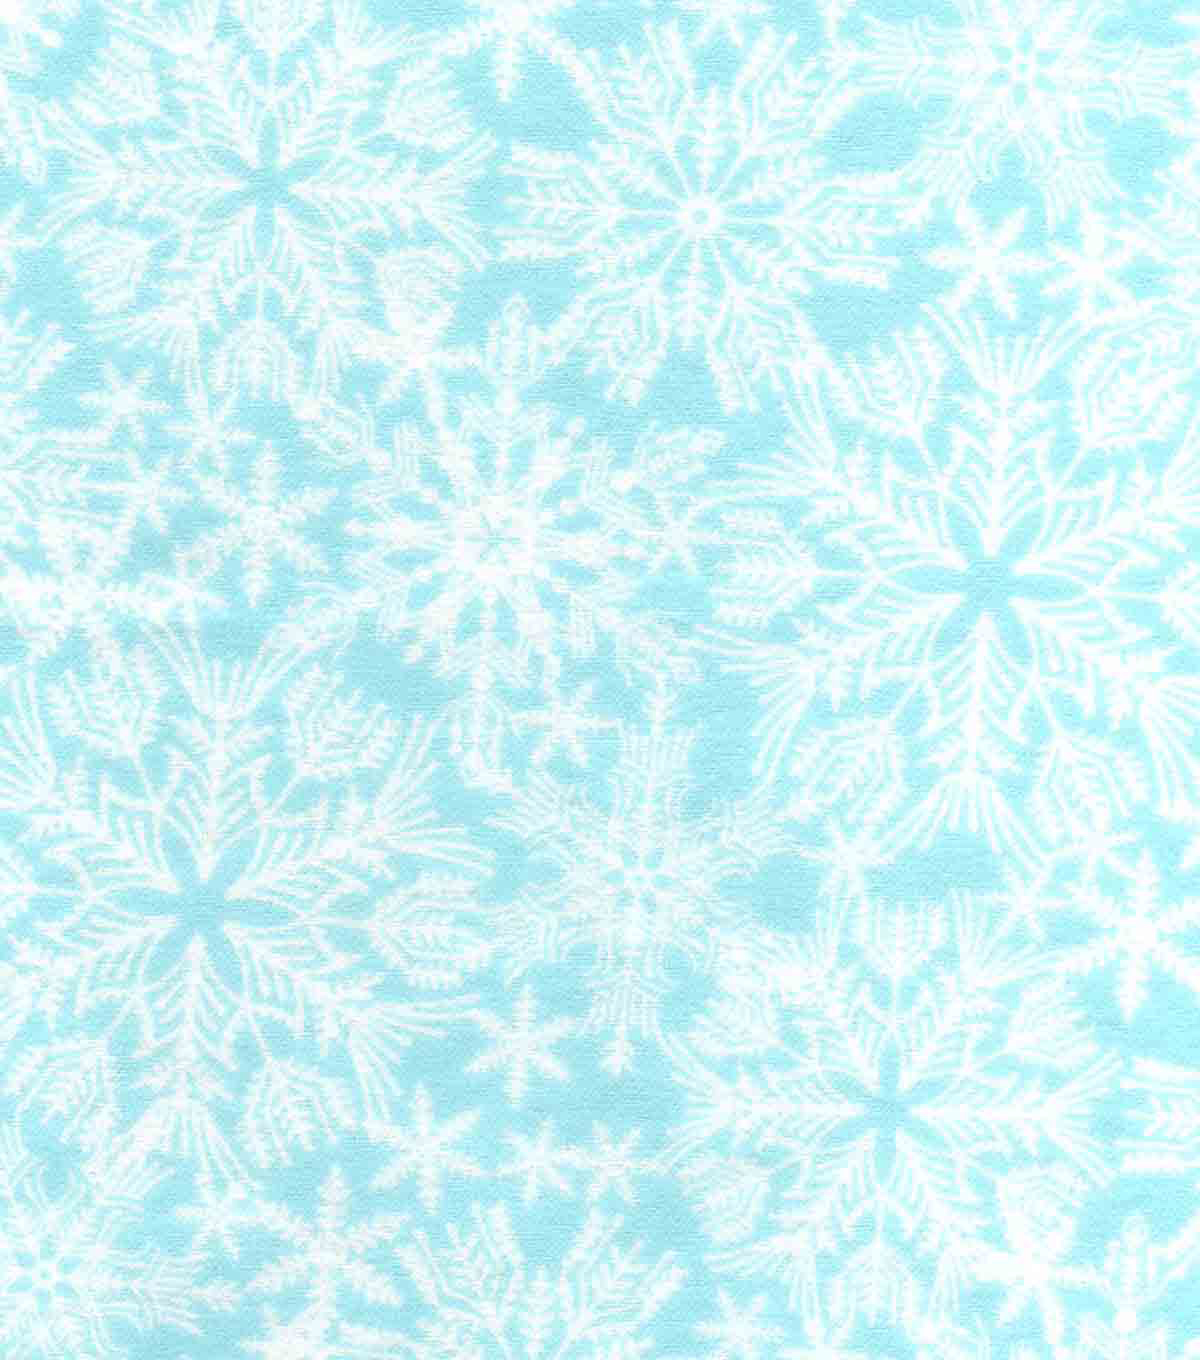 Snuggle Flannel Fabric -Snowflakes On Ice Blue